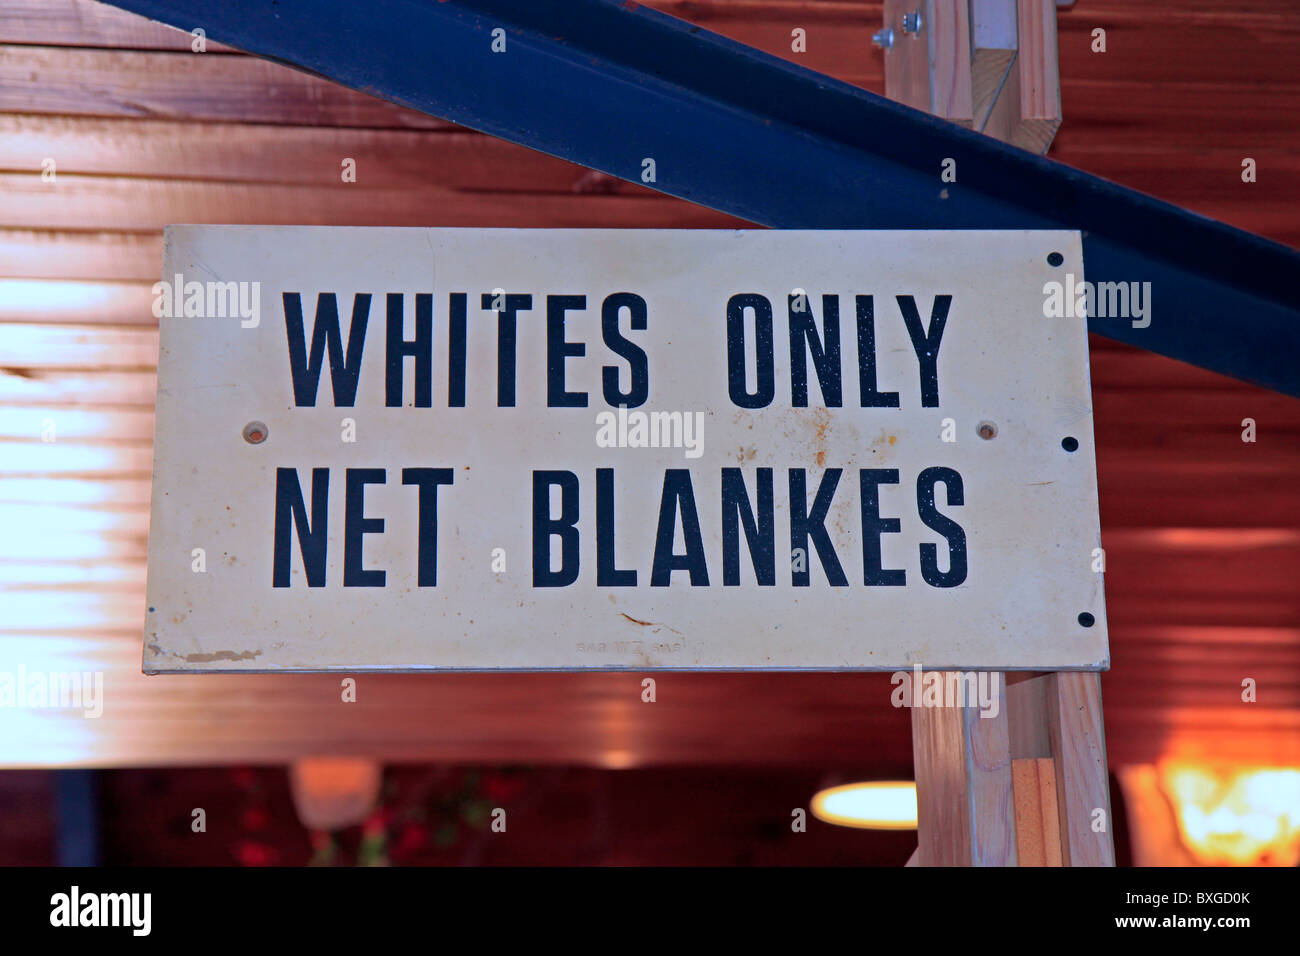 Old Apartheid sign on display at Evita se perron, Darling, Western Cape, South Africa - Stock Image